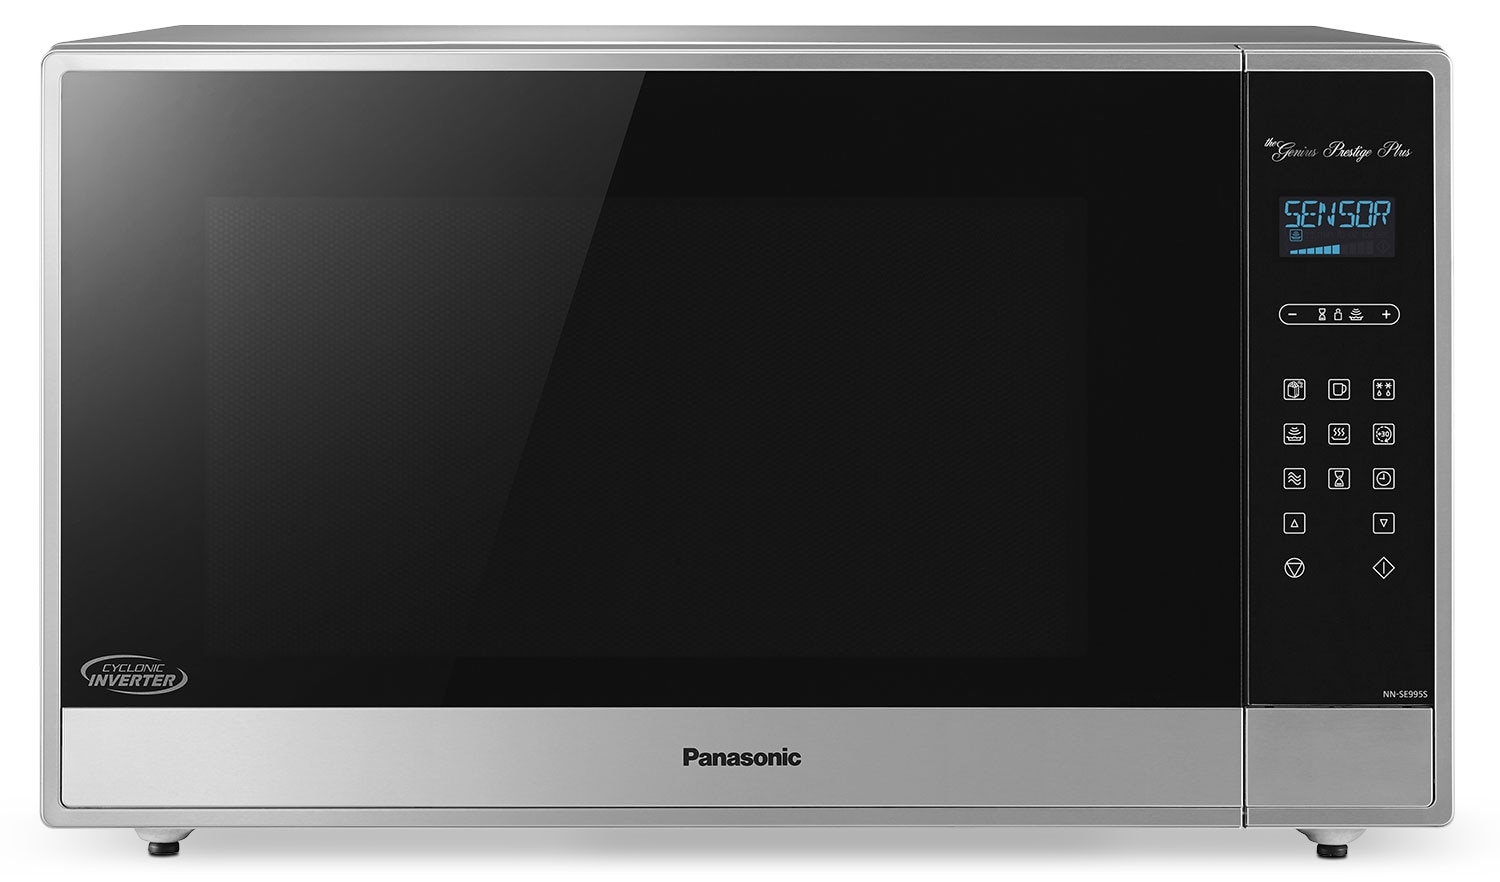 Panasonic 2.2 Cu. Ft. Countertop Microwave – NNSE995S